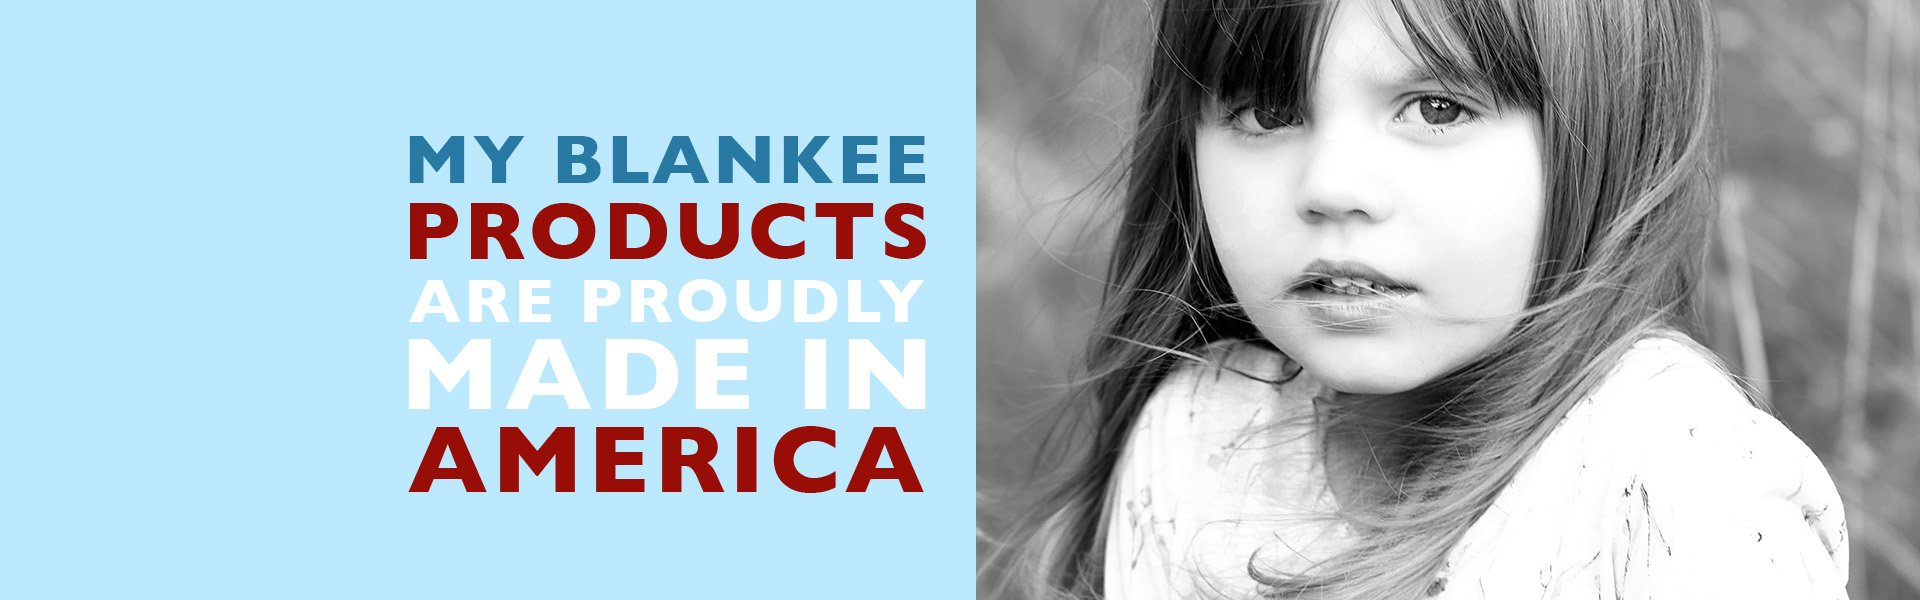 My Blankee Products are Proudly Made in America